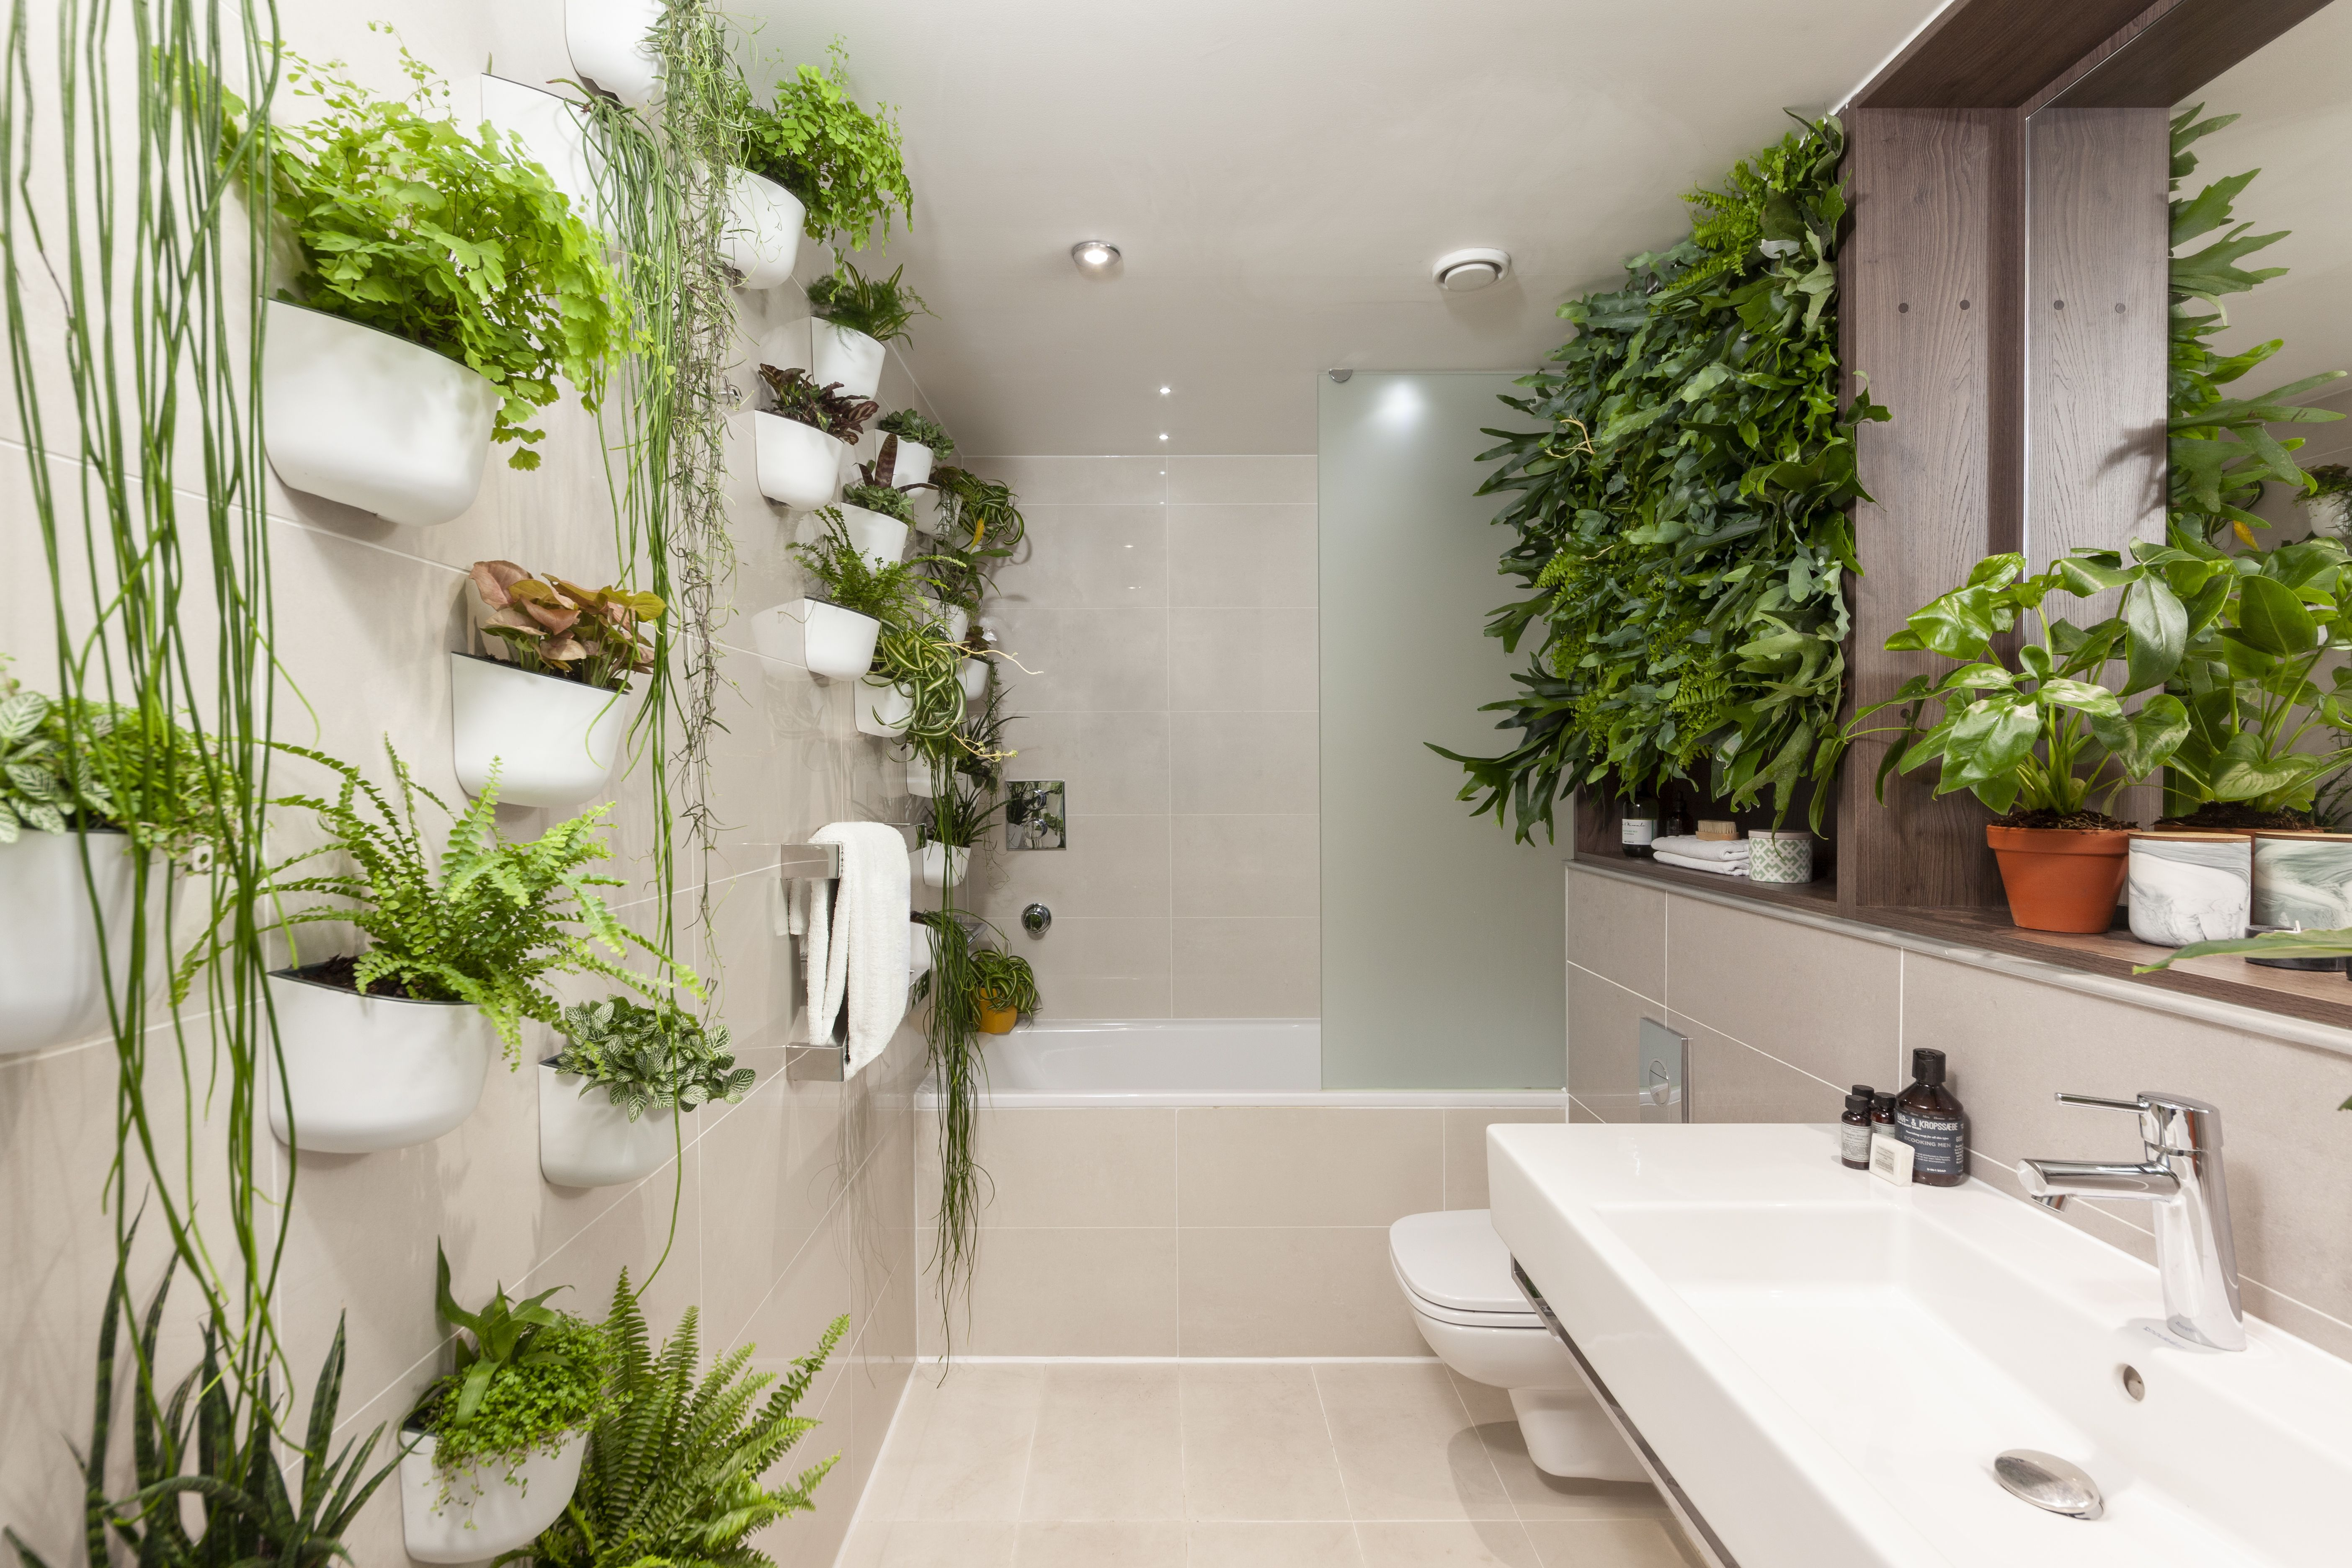 INTRODUCING THE UK'S FIRST JUNGLE HOTEL SUITES   Jungle bathroom ...